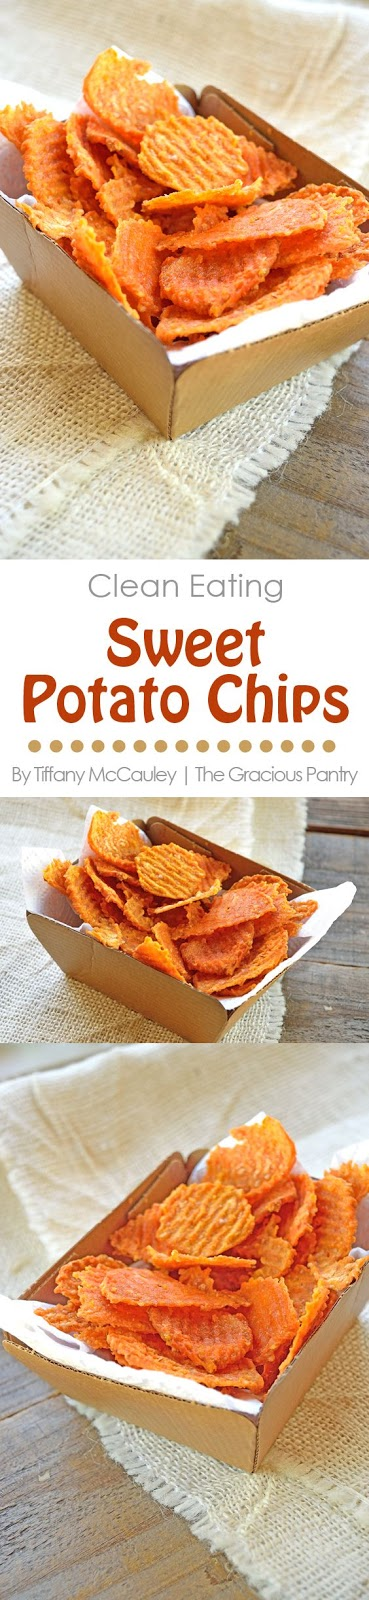 CLEAN EATING TWICE BAKED SWEET POTATO CHIPS RECIPE